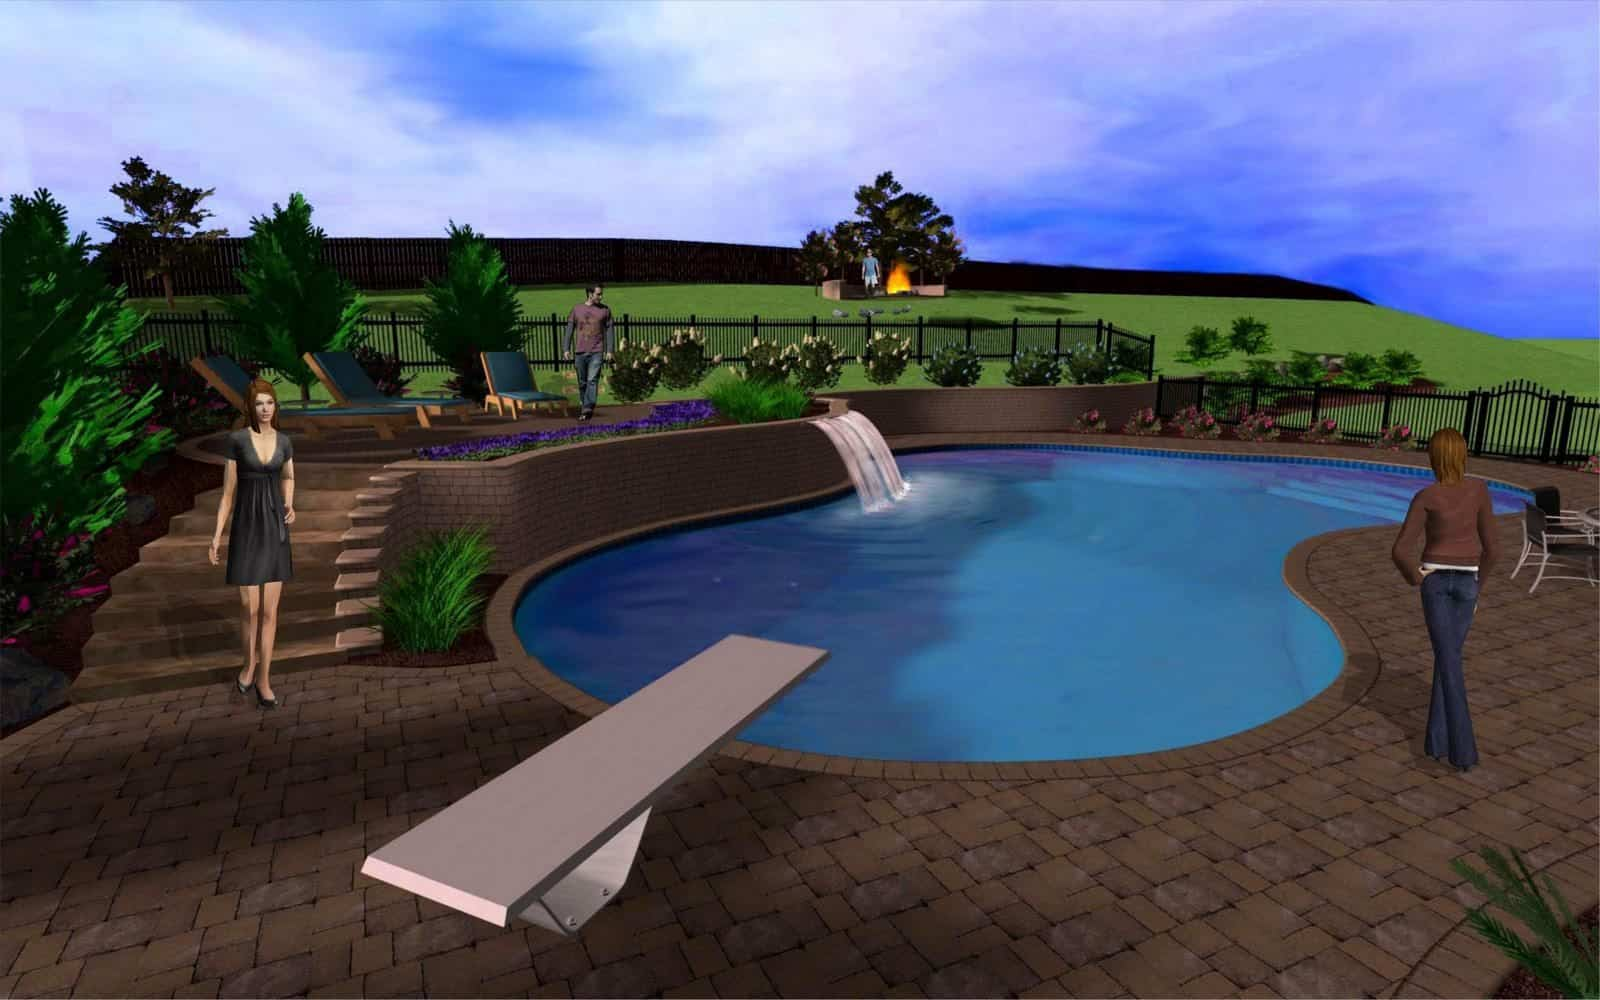 Landscape Design - Pools & Spas - Long Island, NY